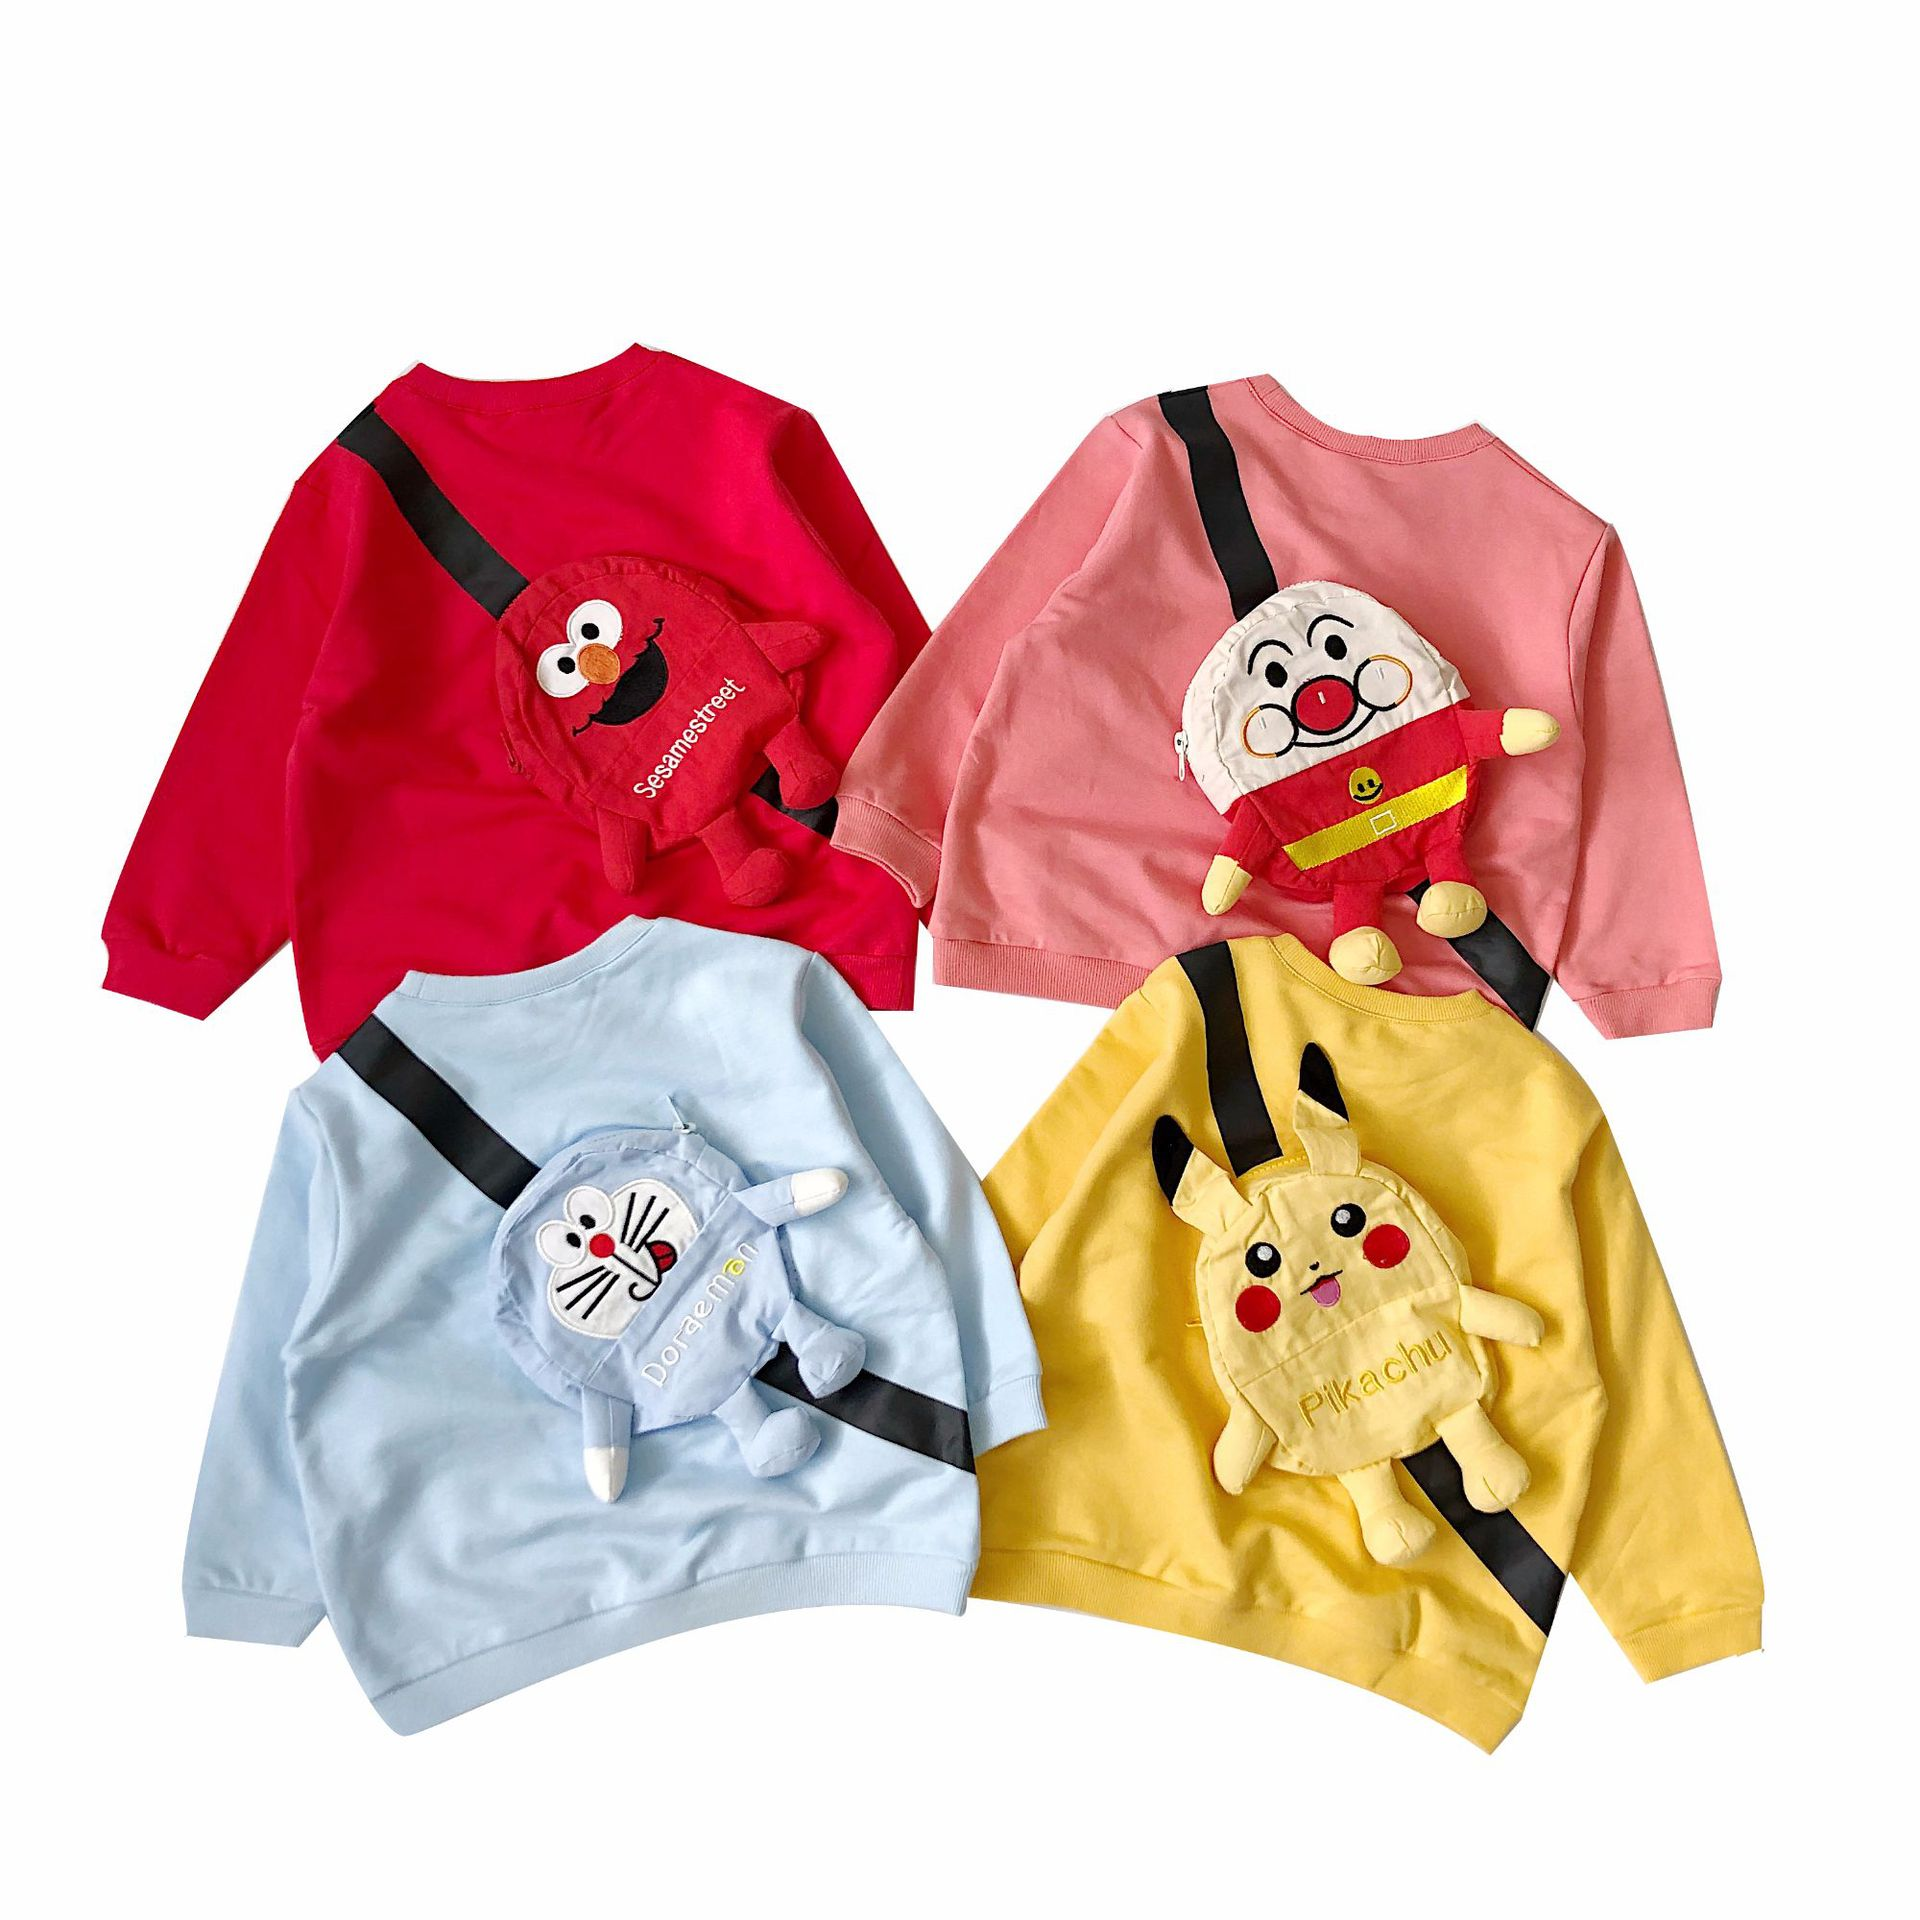 kids sweatshirt solid pink yellow blue colour long sleeve kids tops cartoon character kids sweatshirts(China)